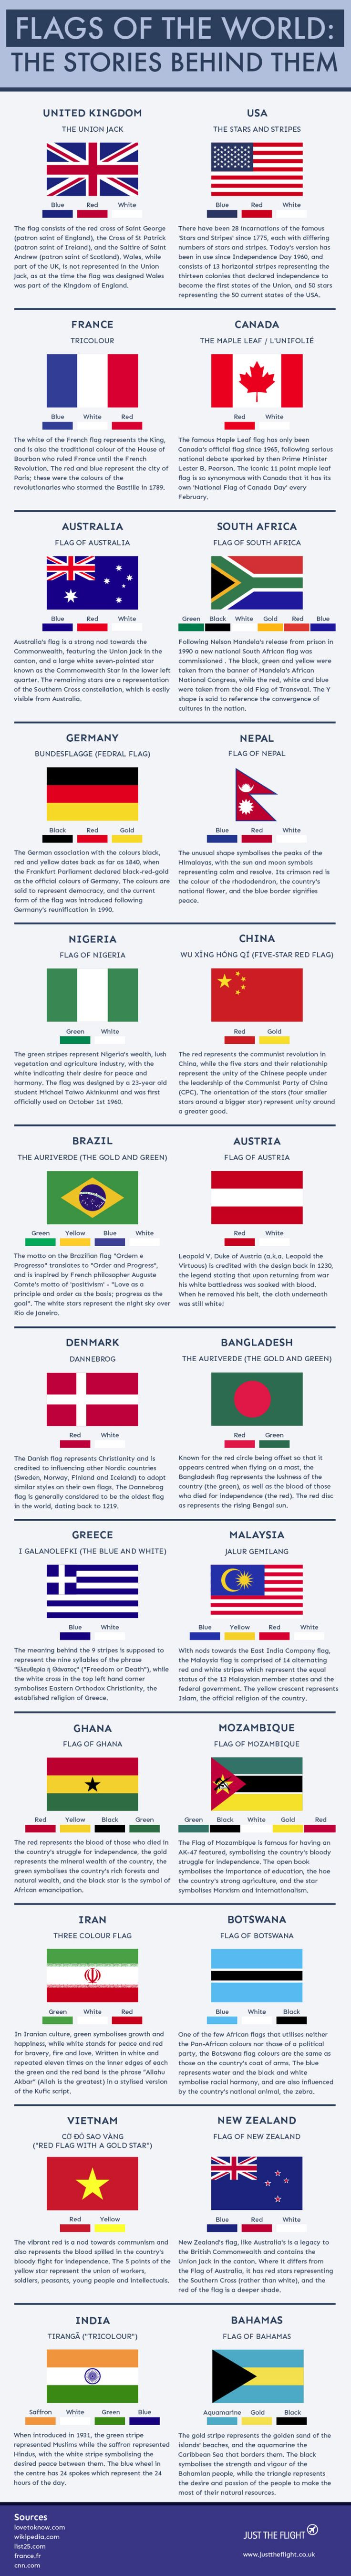 #Flags of the #world: The #story behind them (#Infographic)  #geography #funFacts